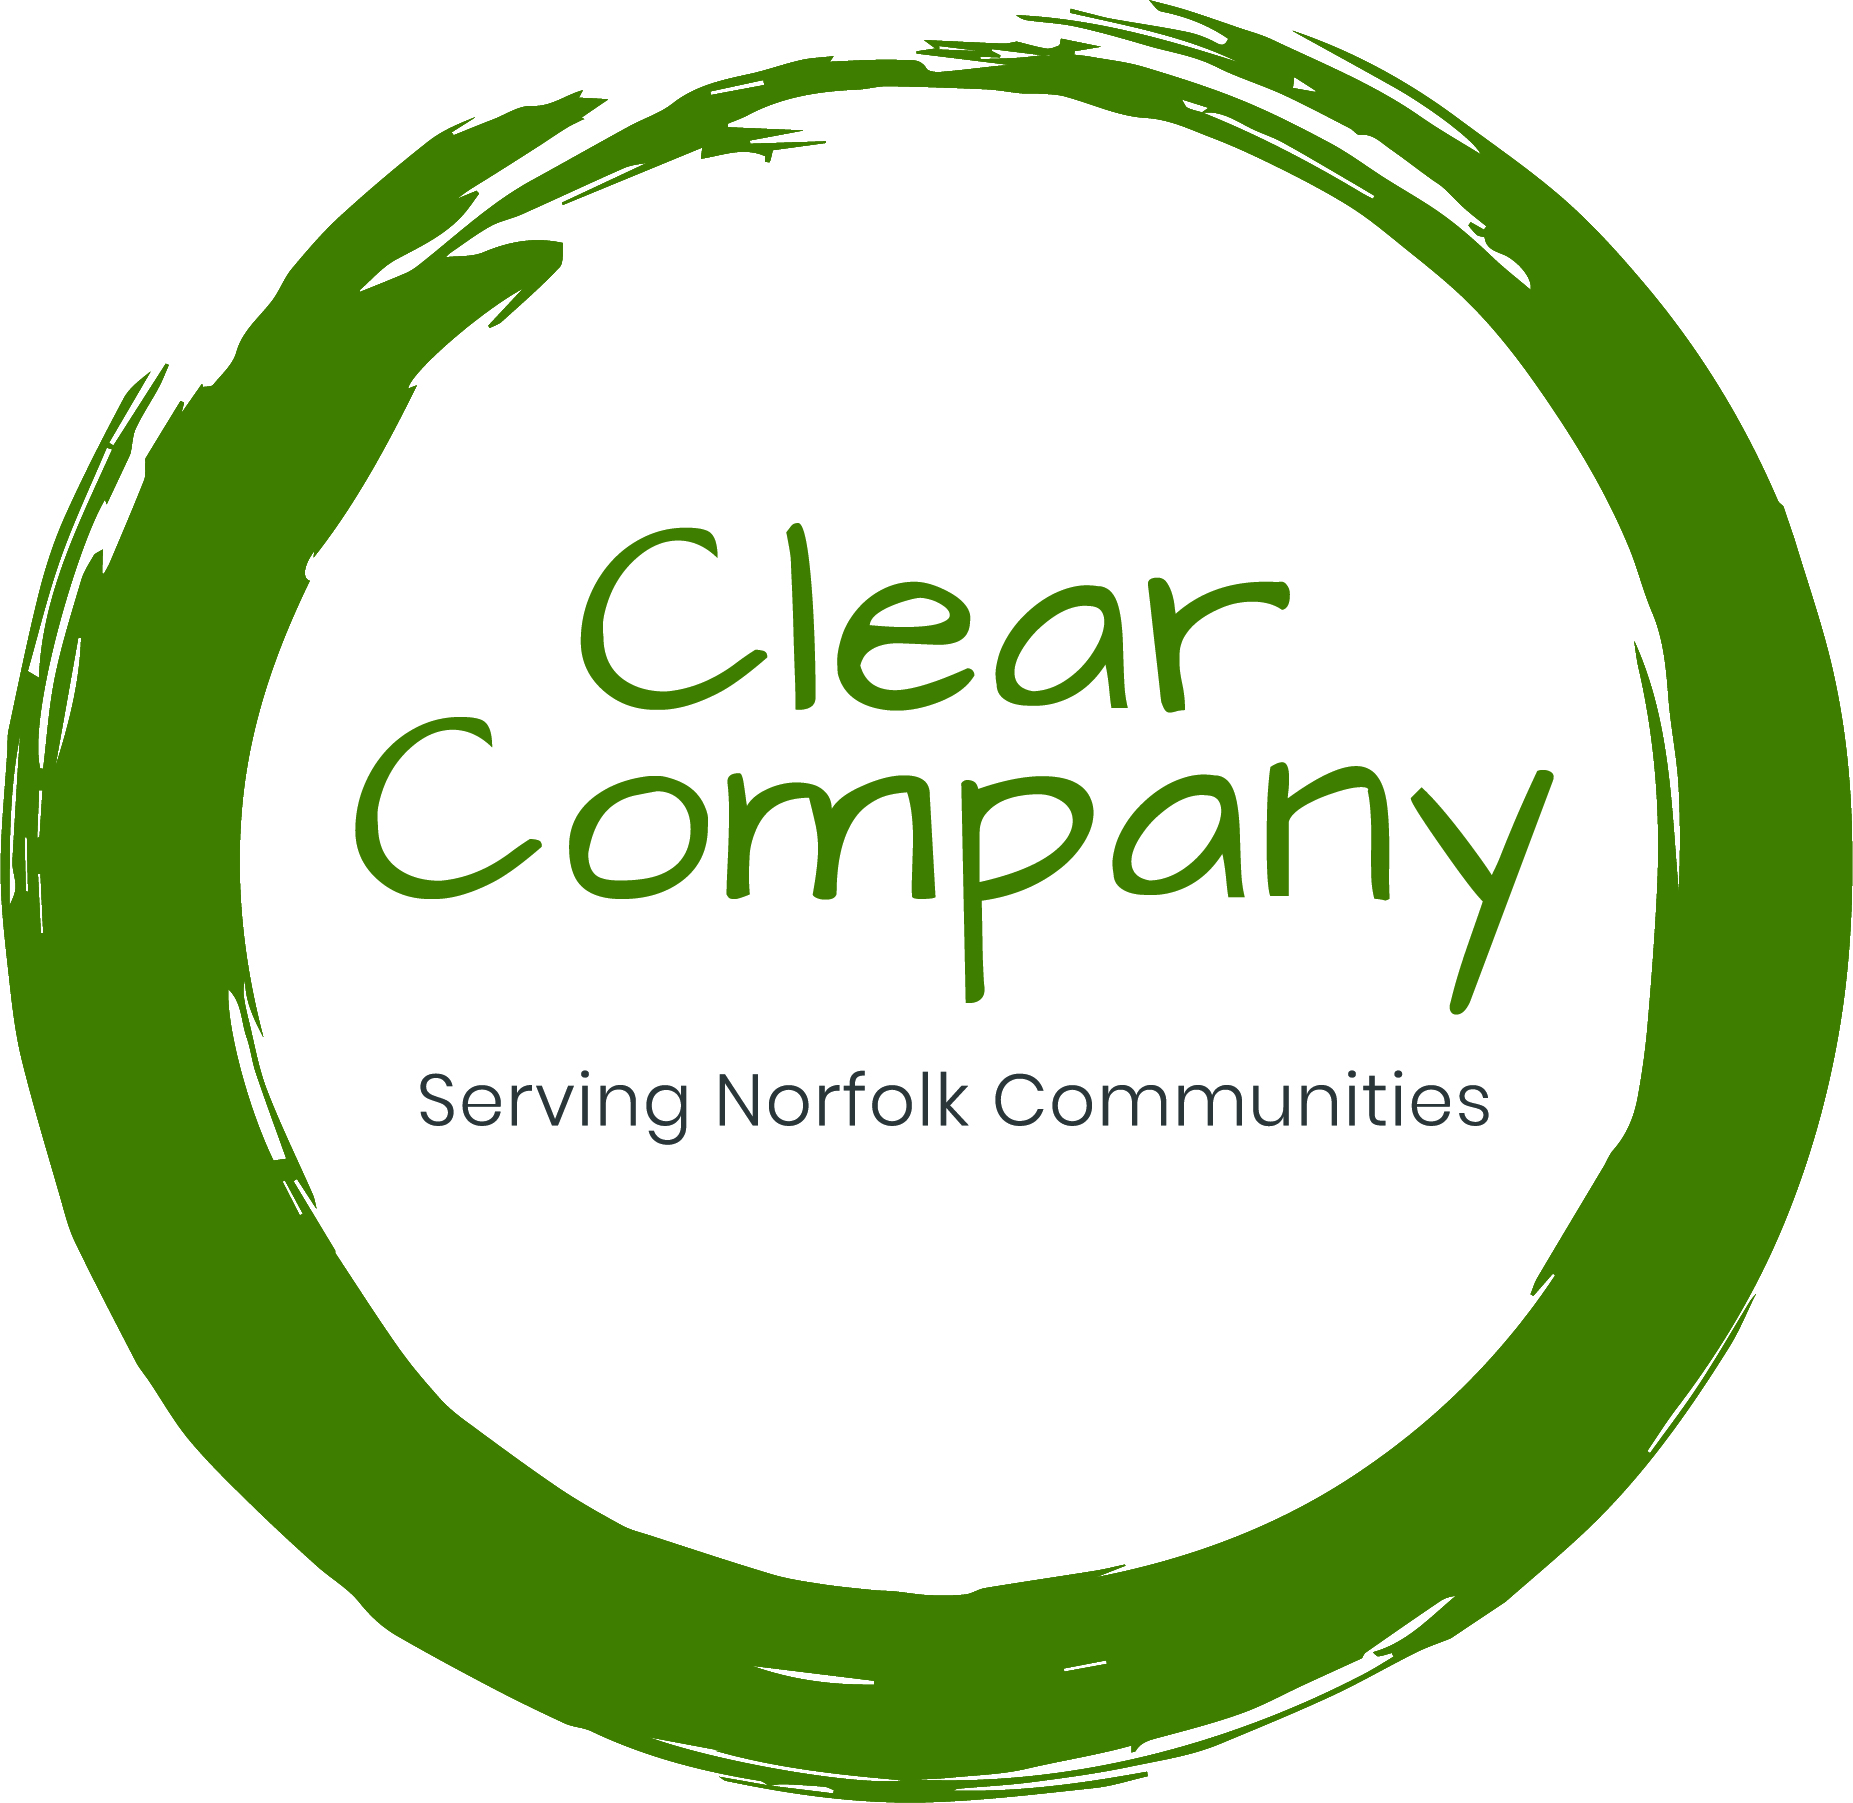 Clear Company Logo - circle with text.jpg